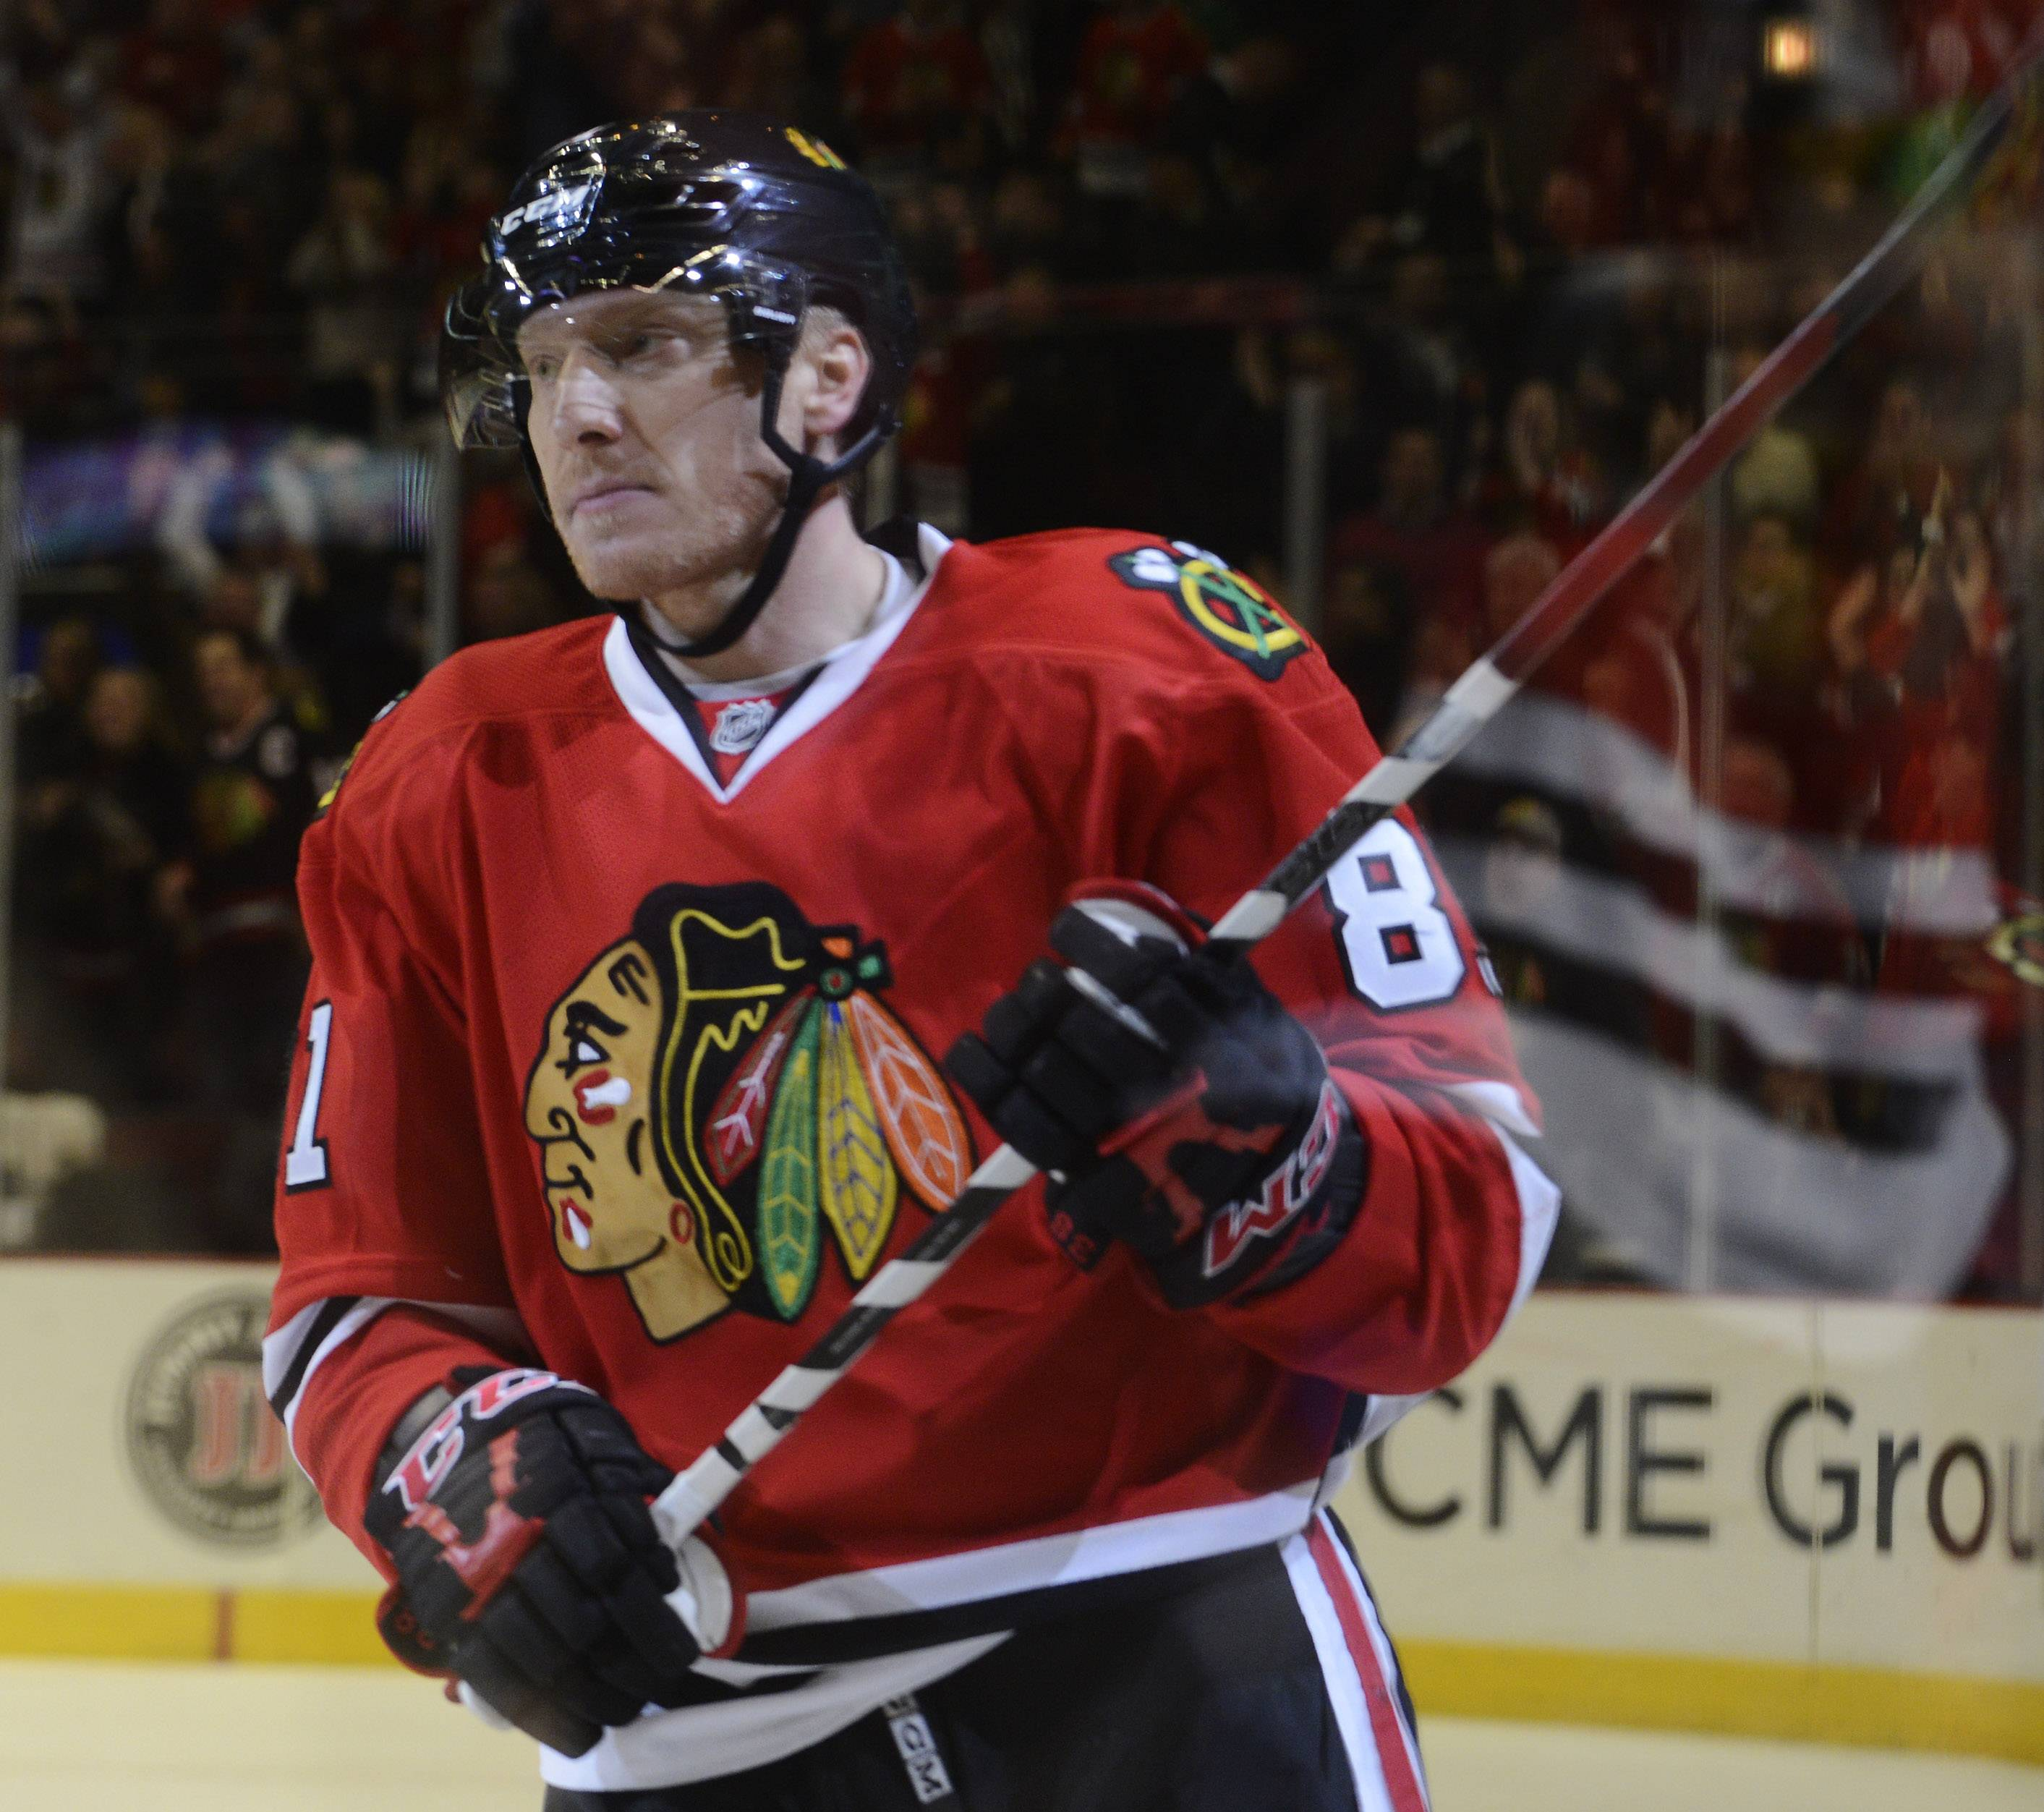 Marian Hossa does things on the ice that still amaze even those who see him every day, his Blackhawks teammates and coaches say.